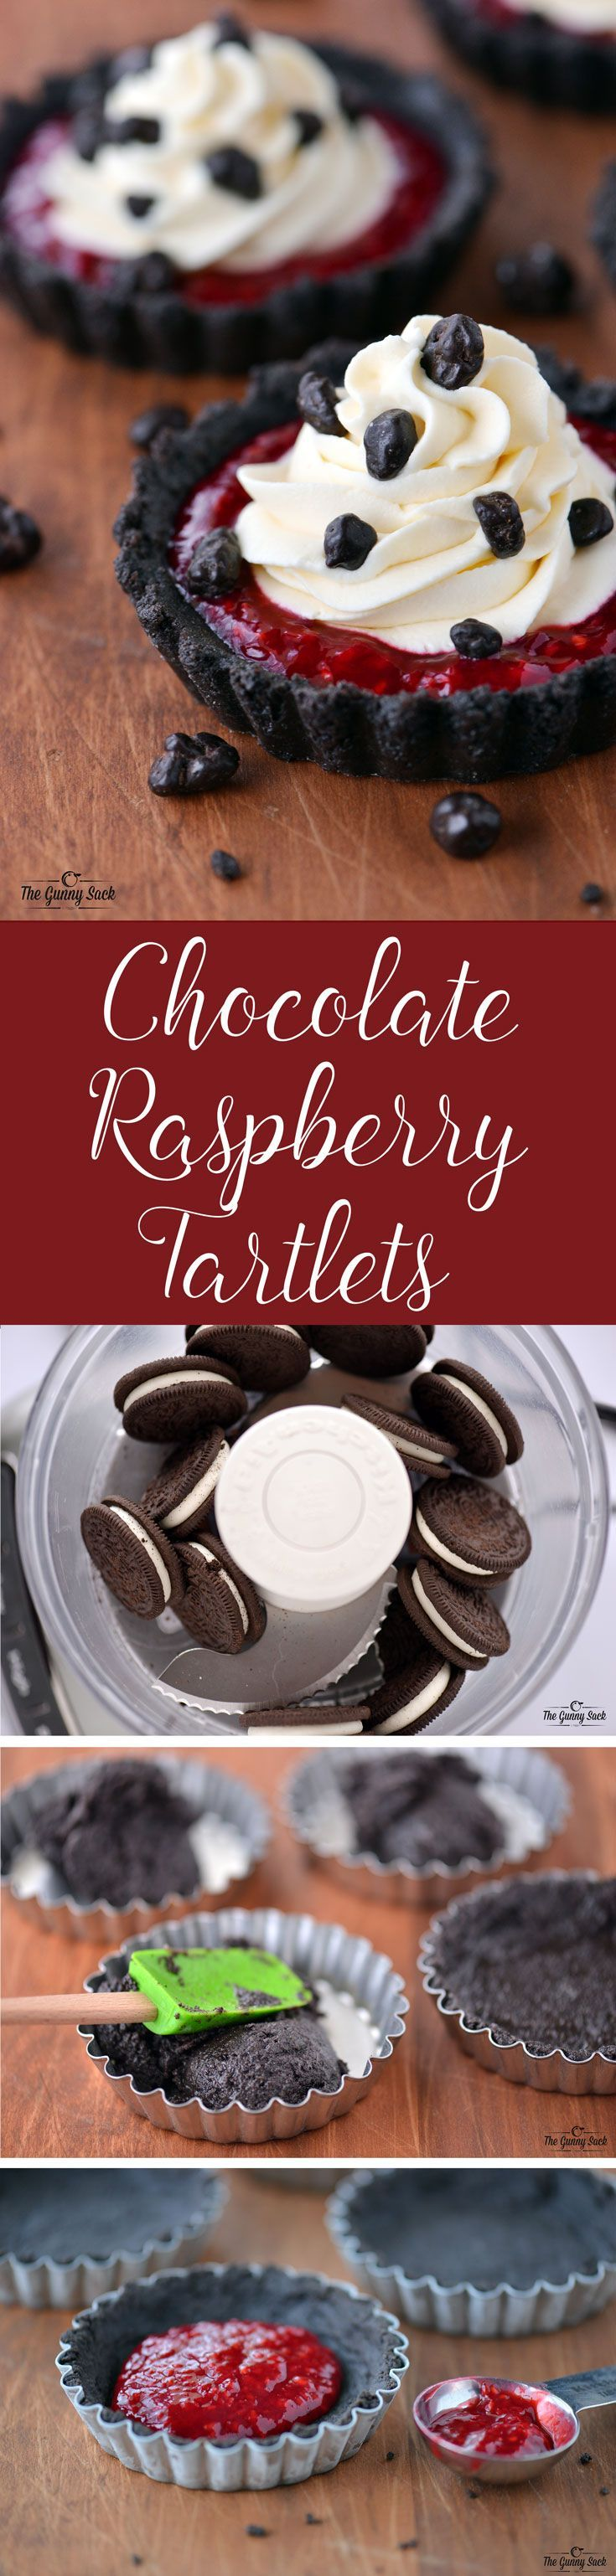 Gorgeous Chocolate Raspberry Tartlets recipe topped with cheesecake whipped cream! This dessert is perfect for Valentine's Day!